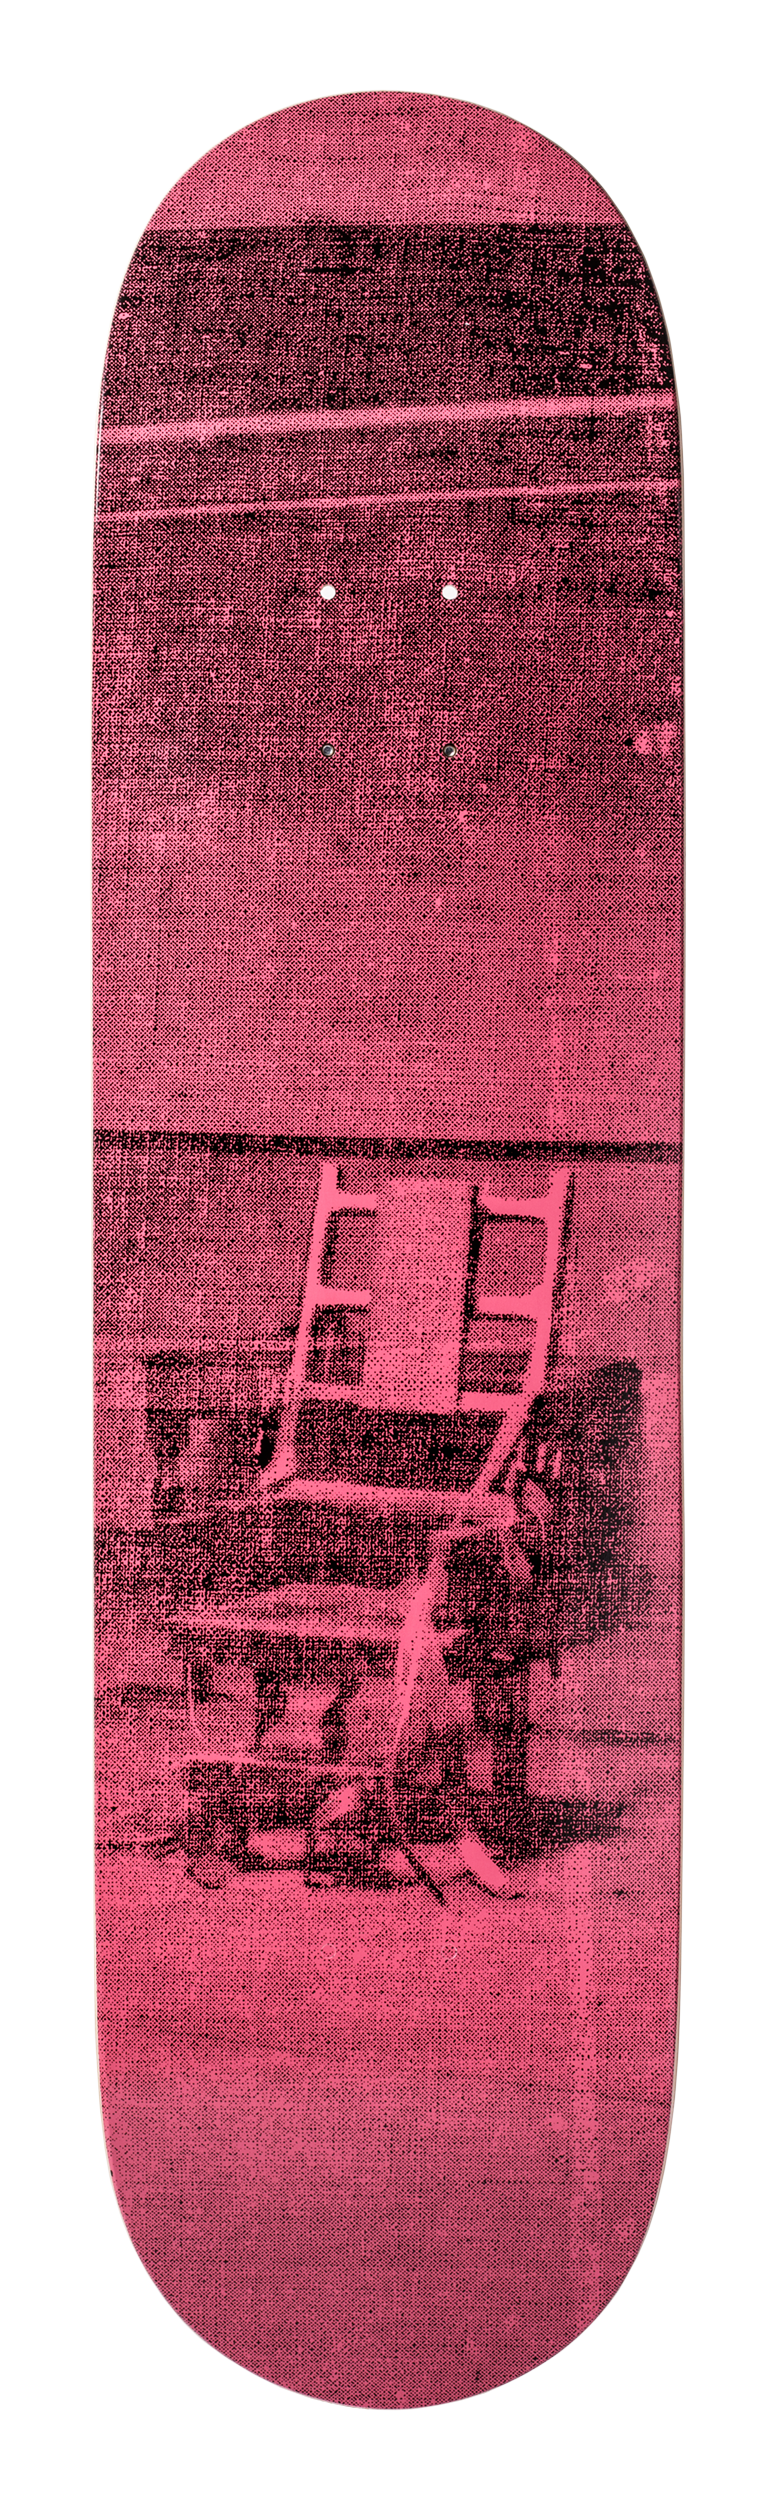 Andy Warhol Electric Chairs Pink